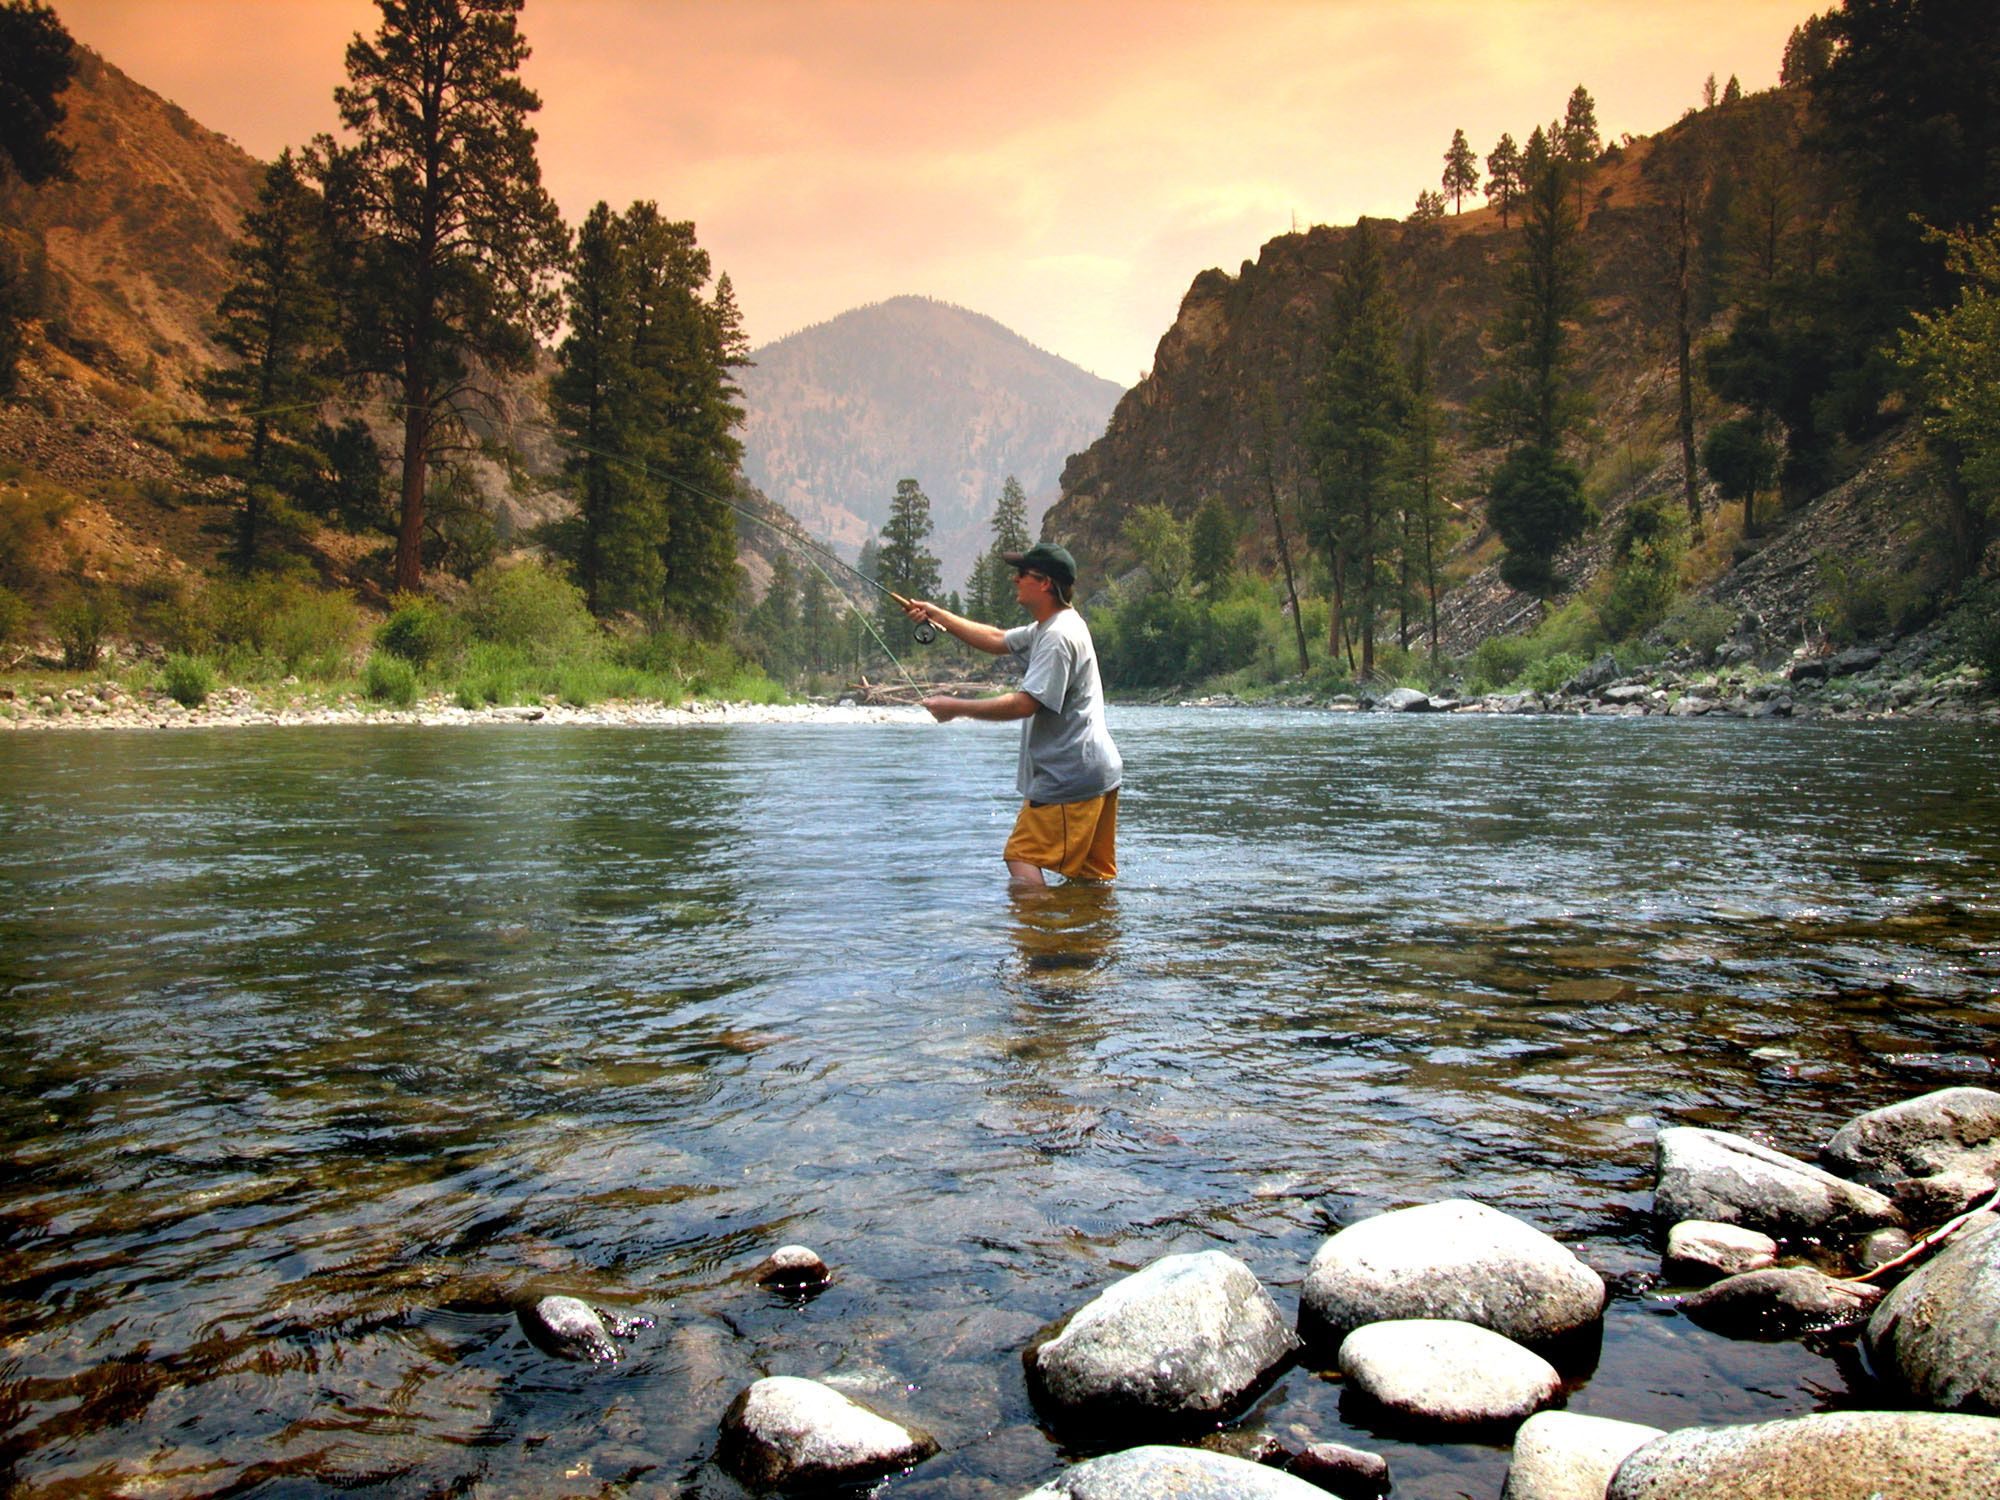 9. Summery place/travel, Salmon River, Idaho great fishing, rafting, camping...one of my favorite places!